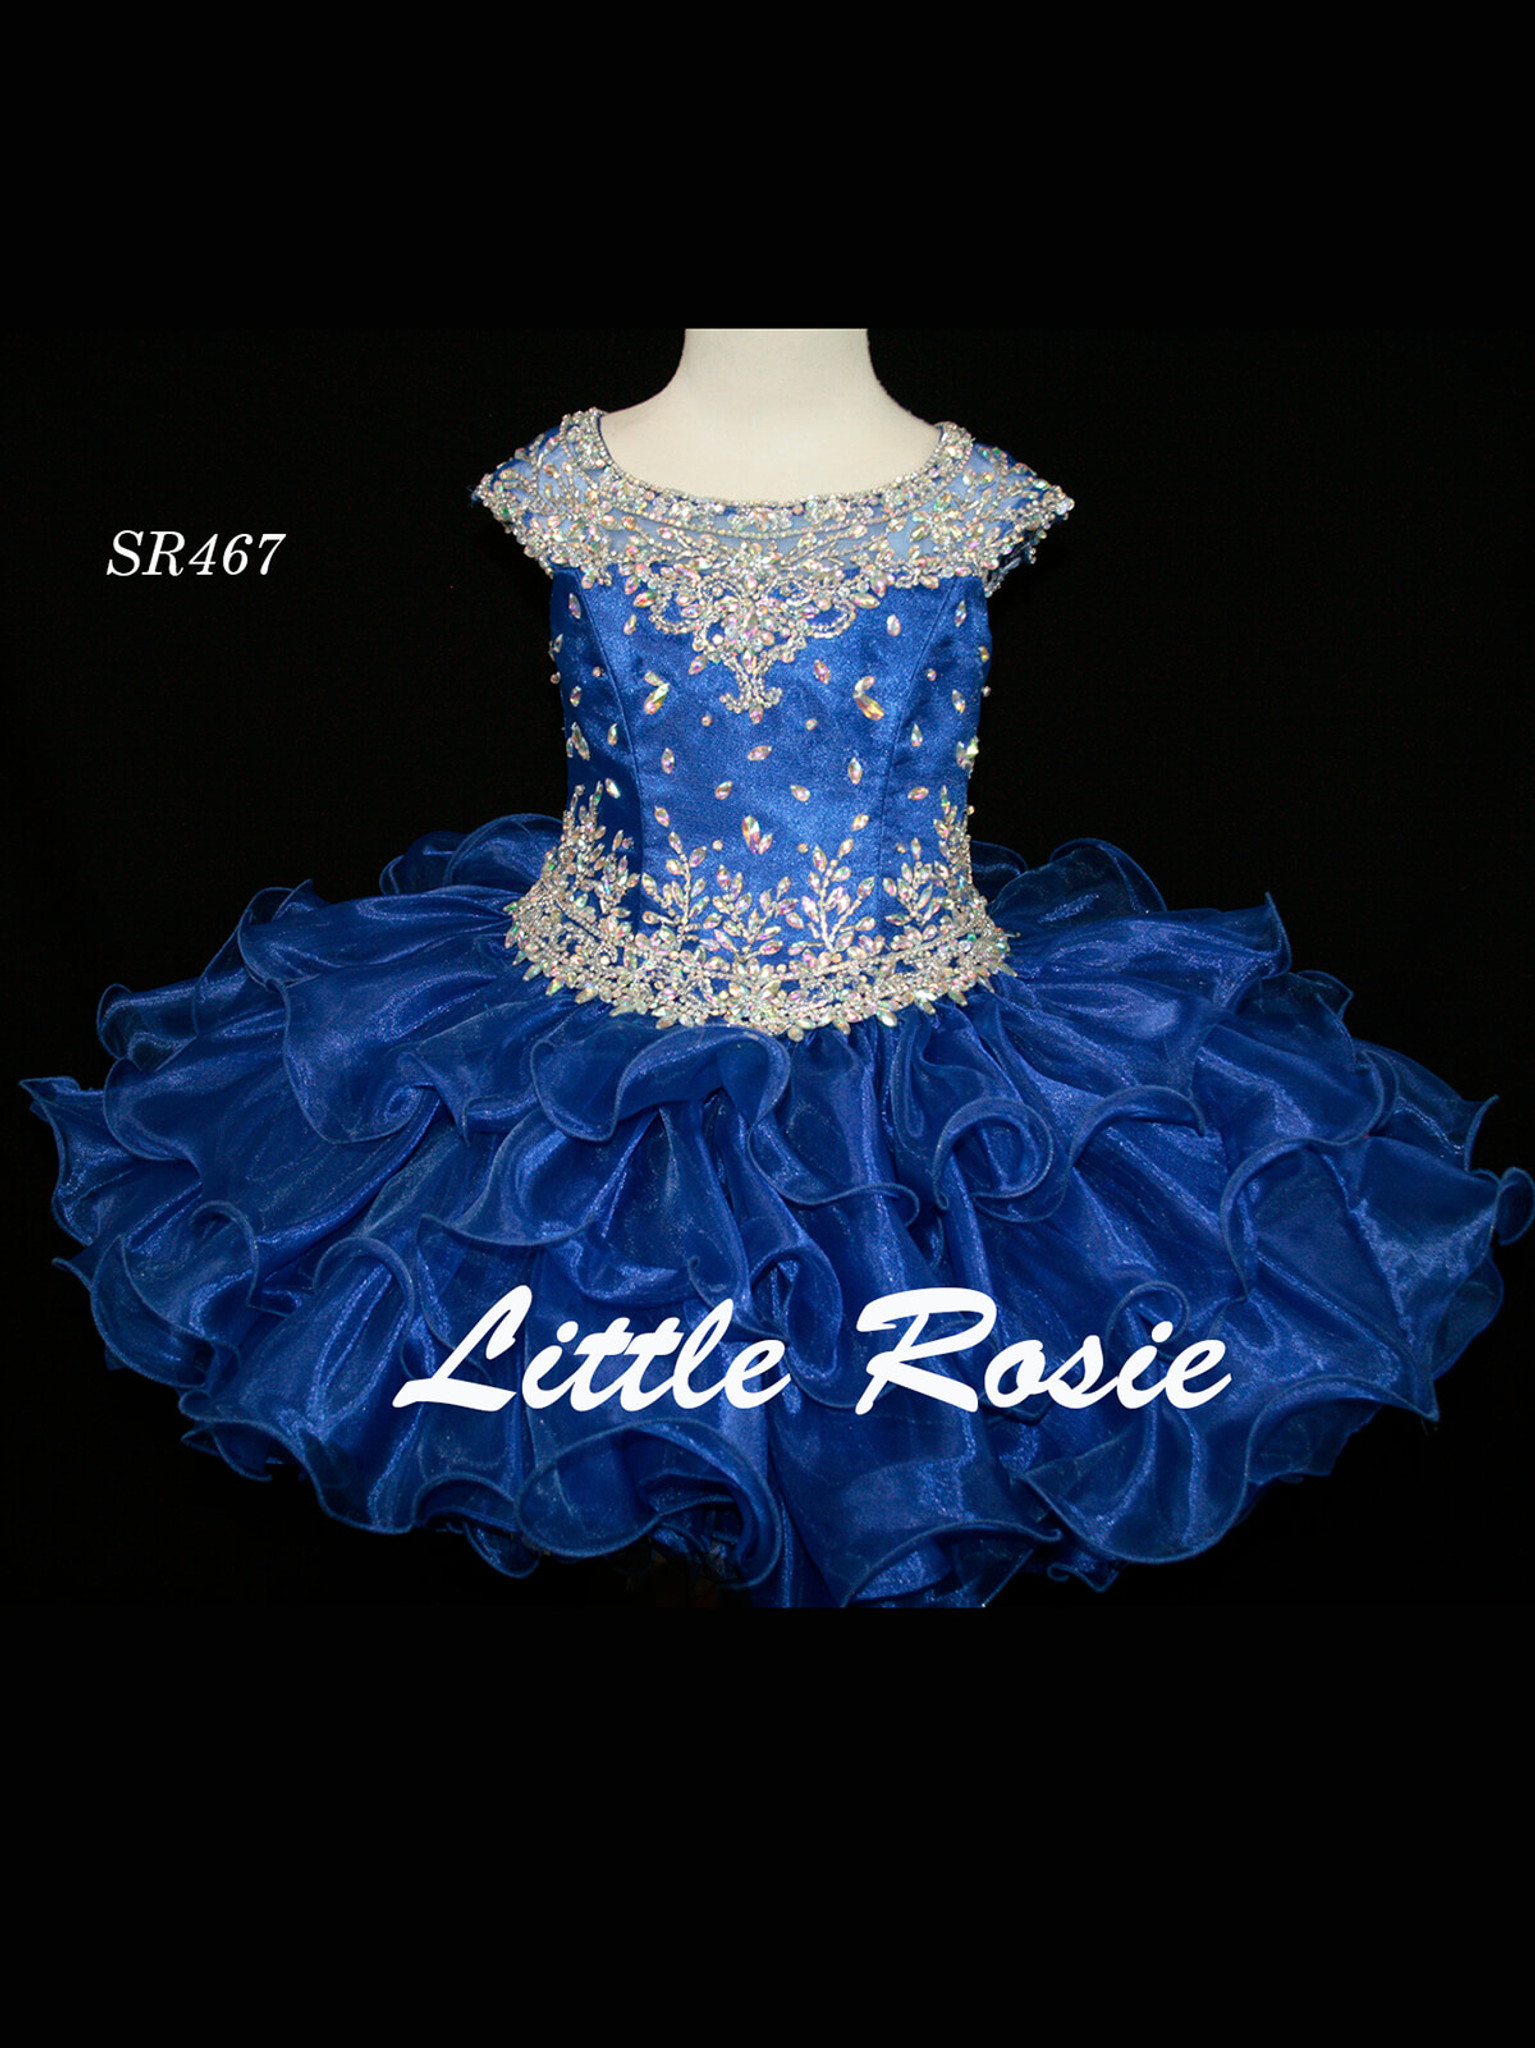 Cap Sleeved Cupcake Pageant Dress Little Rosie SR467